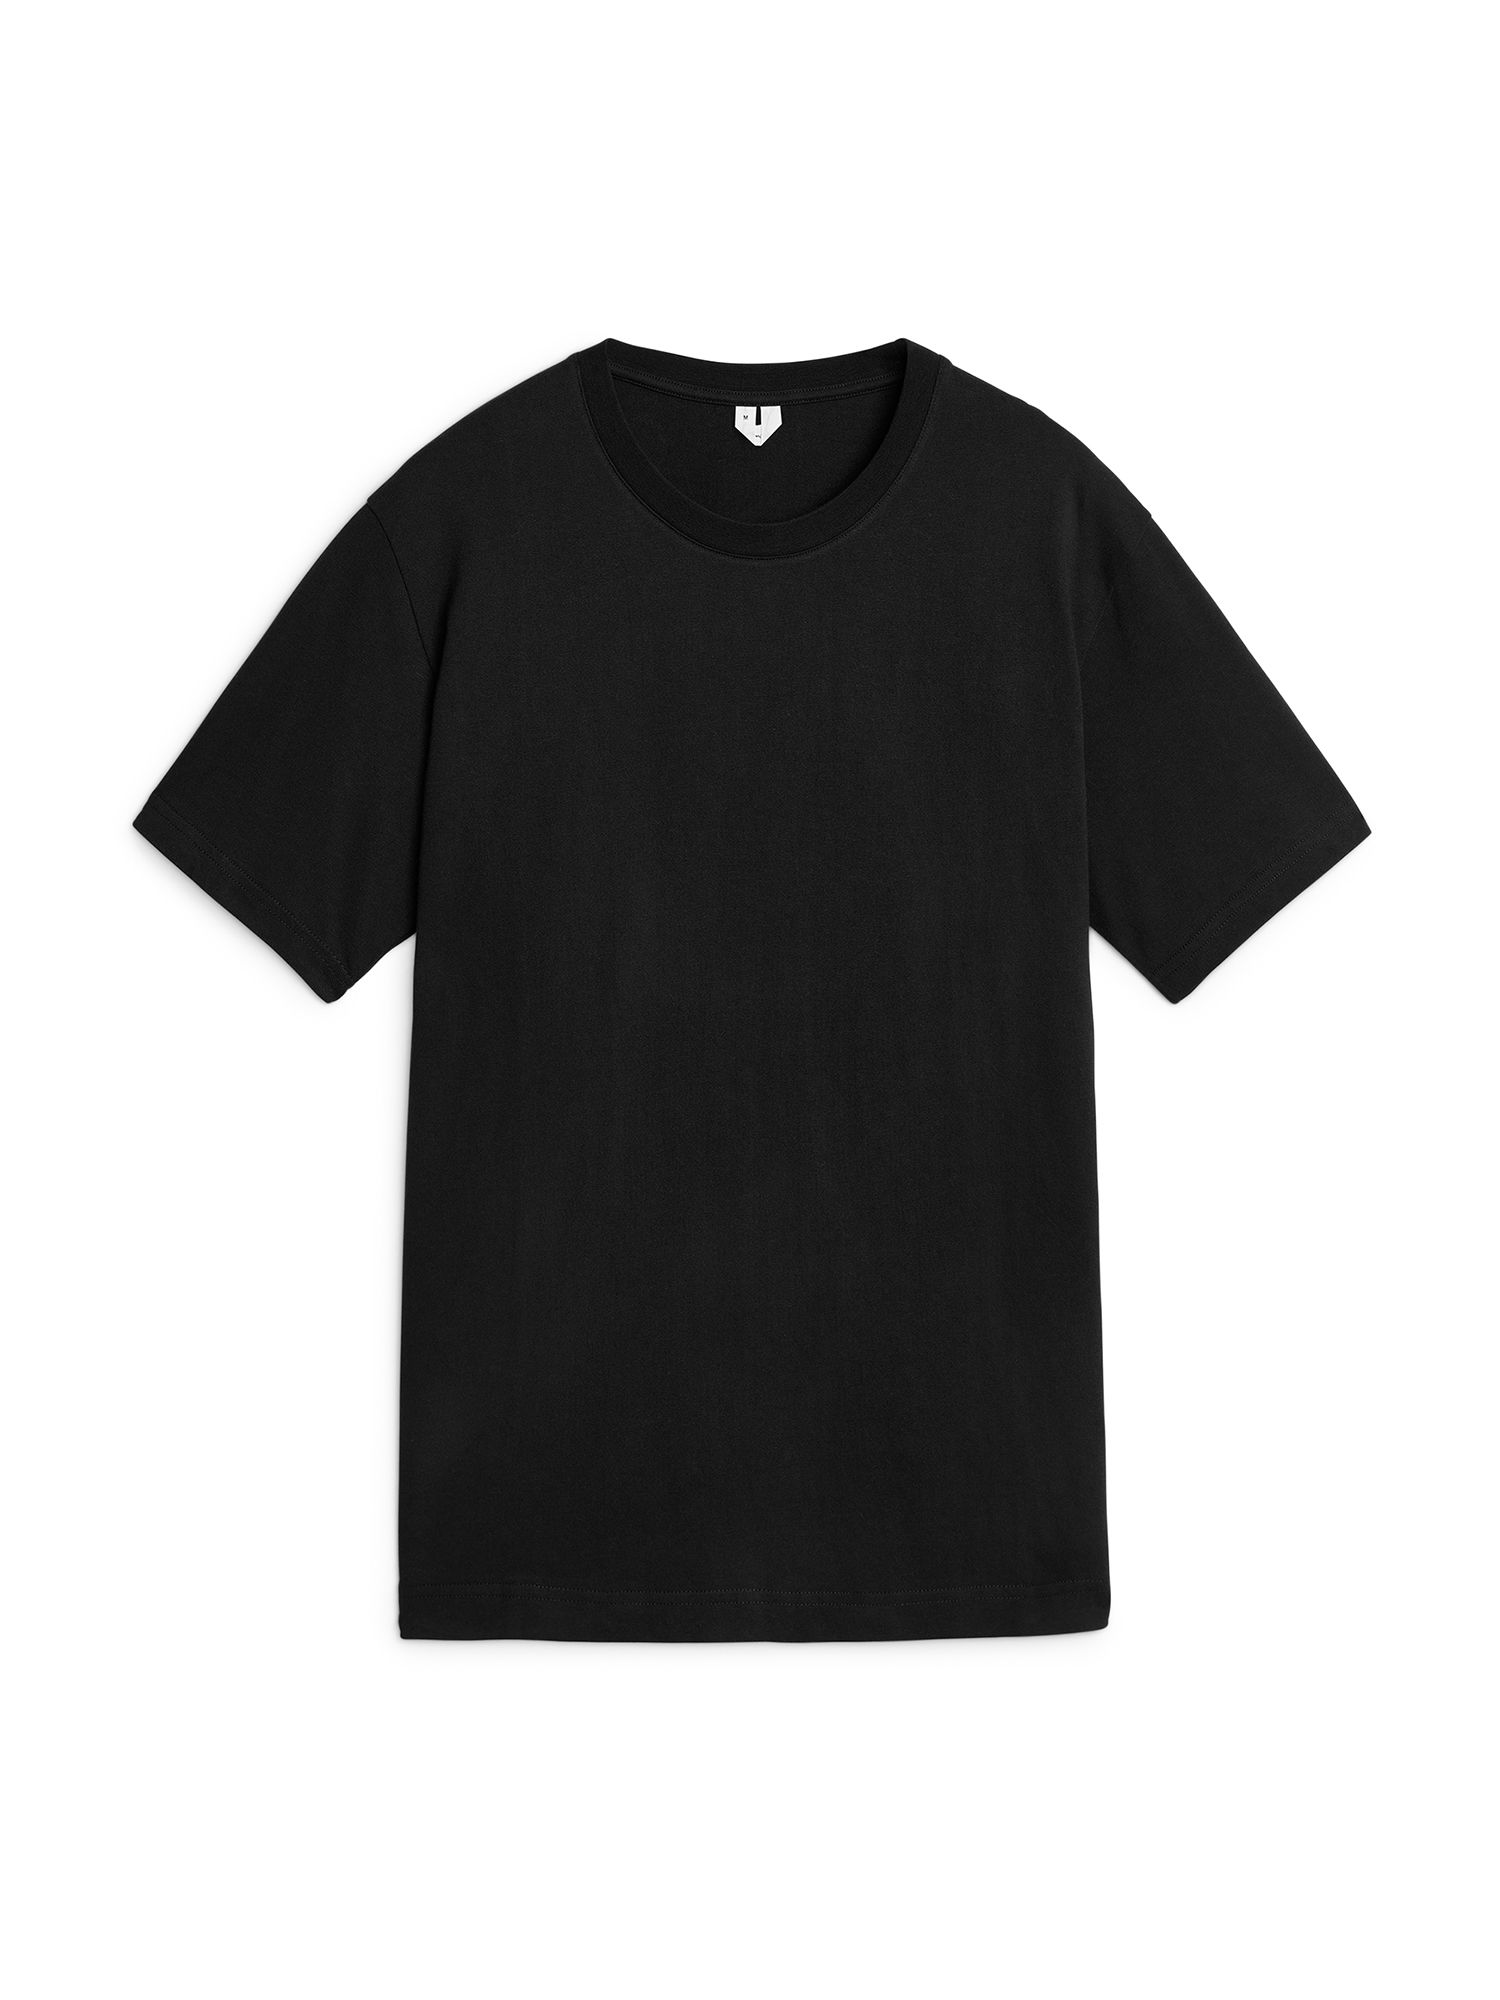 Fabric Swatch image of Arket 220 gsm t-shirt in black